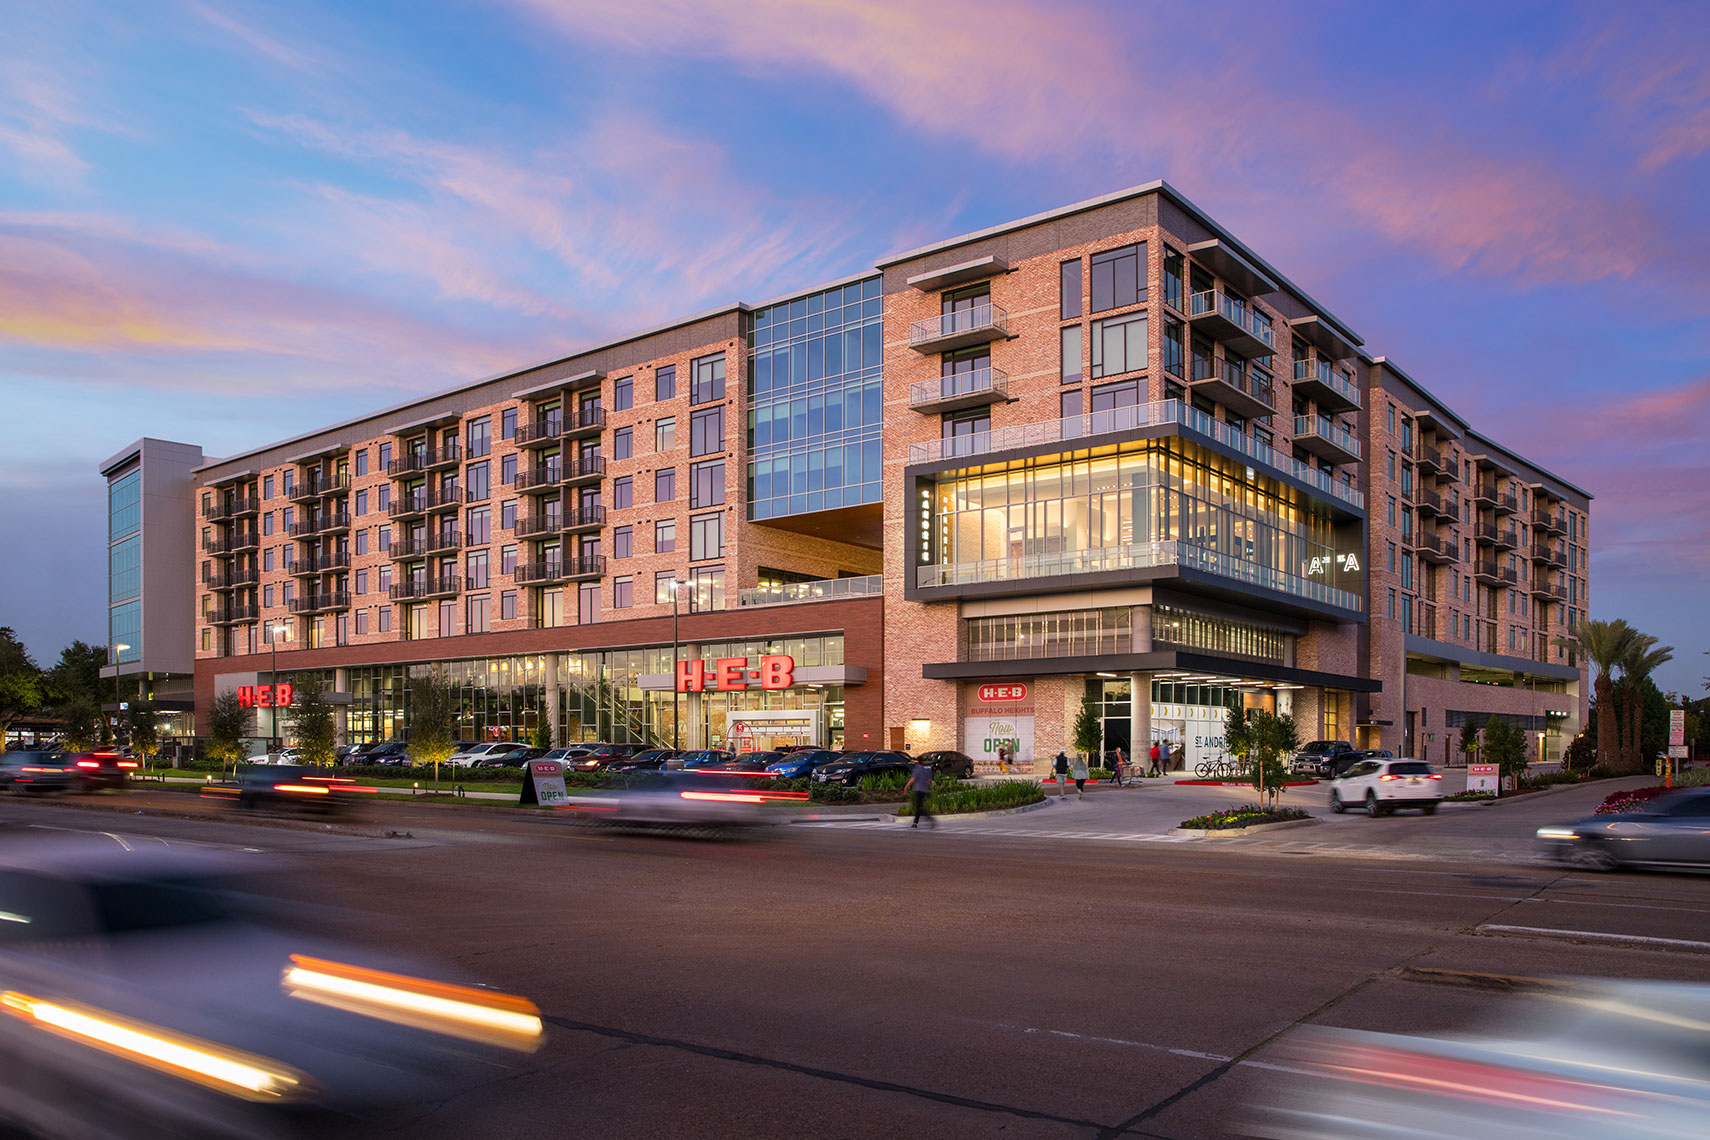 The St. Andrie at Buffalo Heights with HEB at Sunset by Houston Architecture Photographer Shannon O